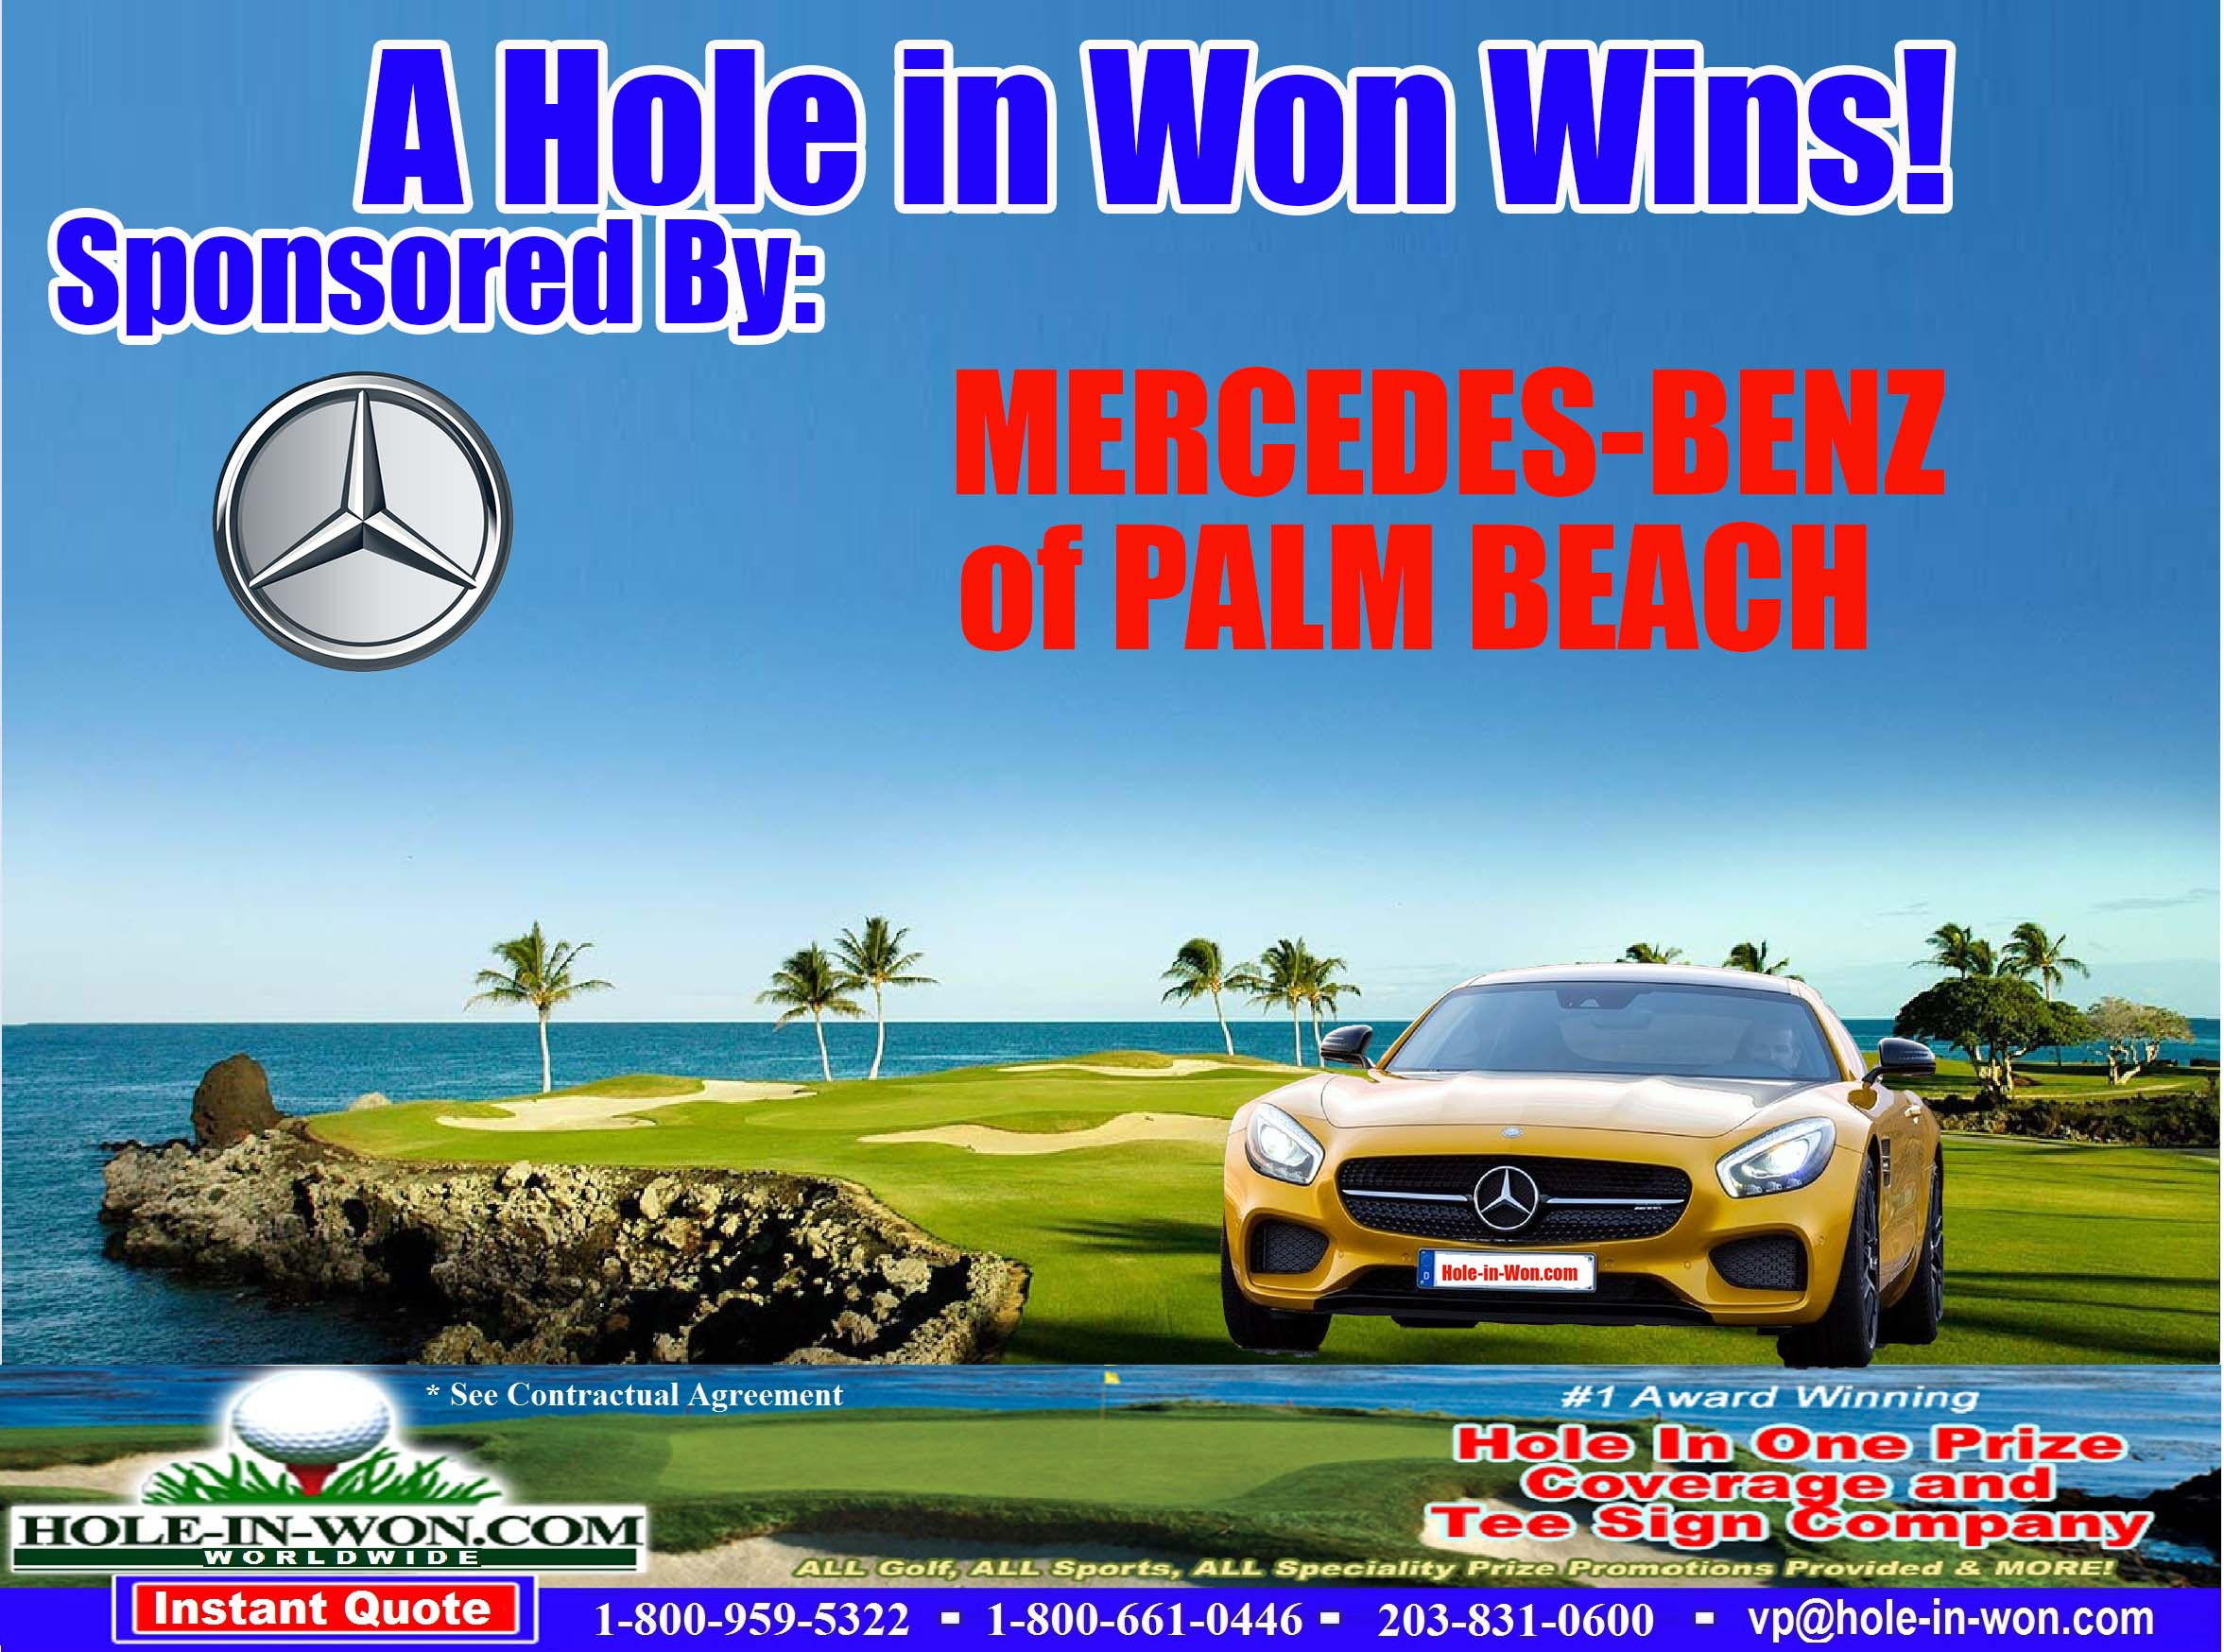 Mercedes Benz Hole In One Images